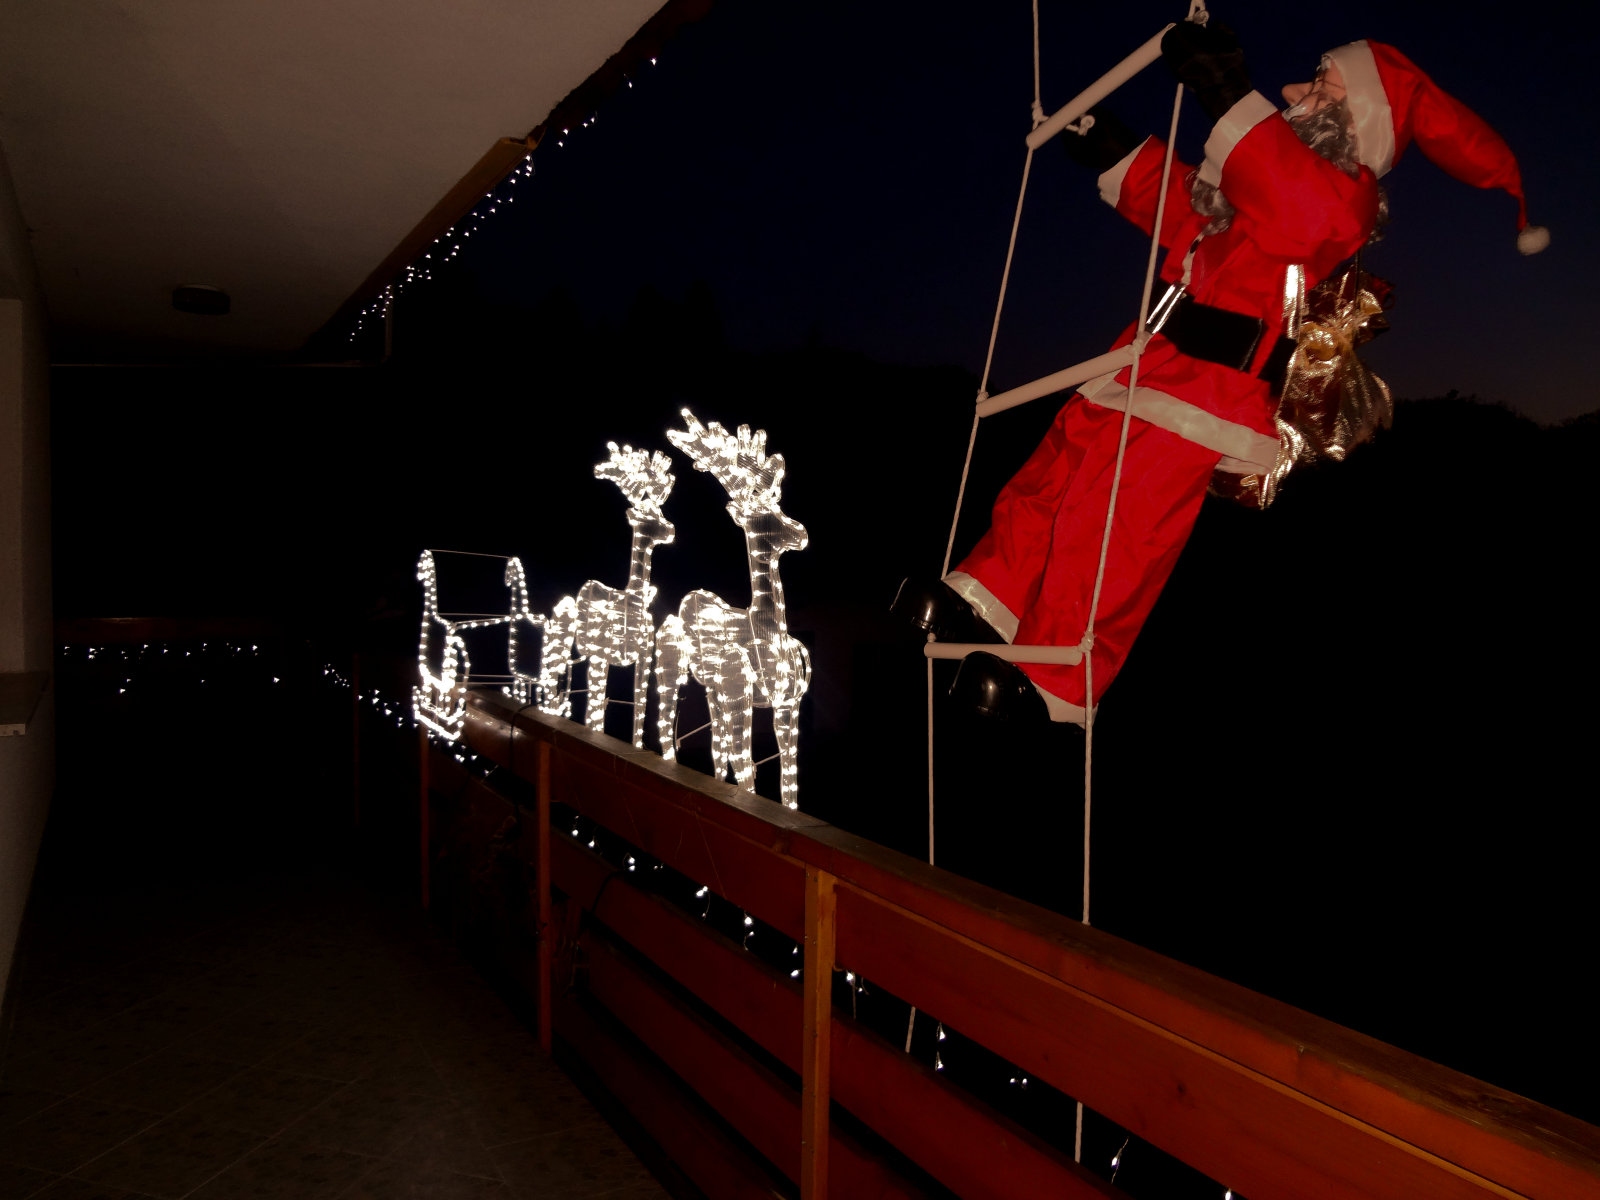 Exterior of the Fine Stay Apartment during the festive season with Santa and reindeers